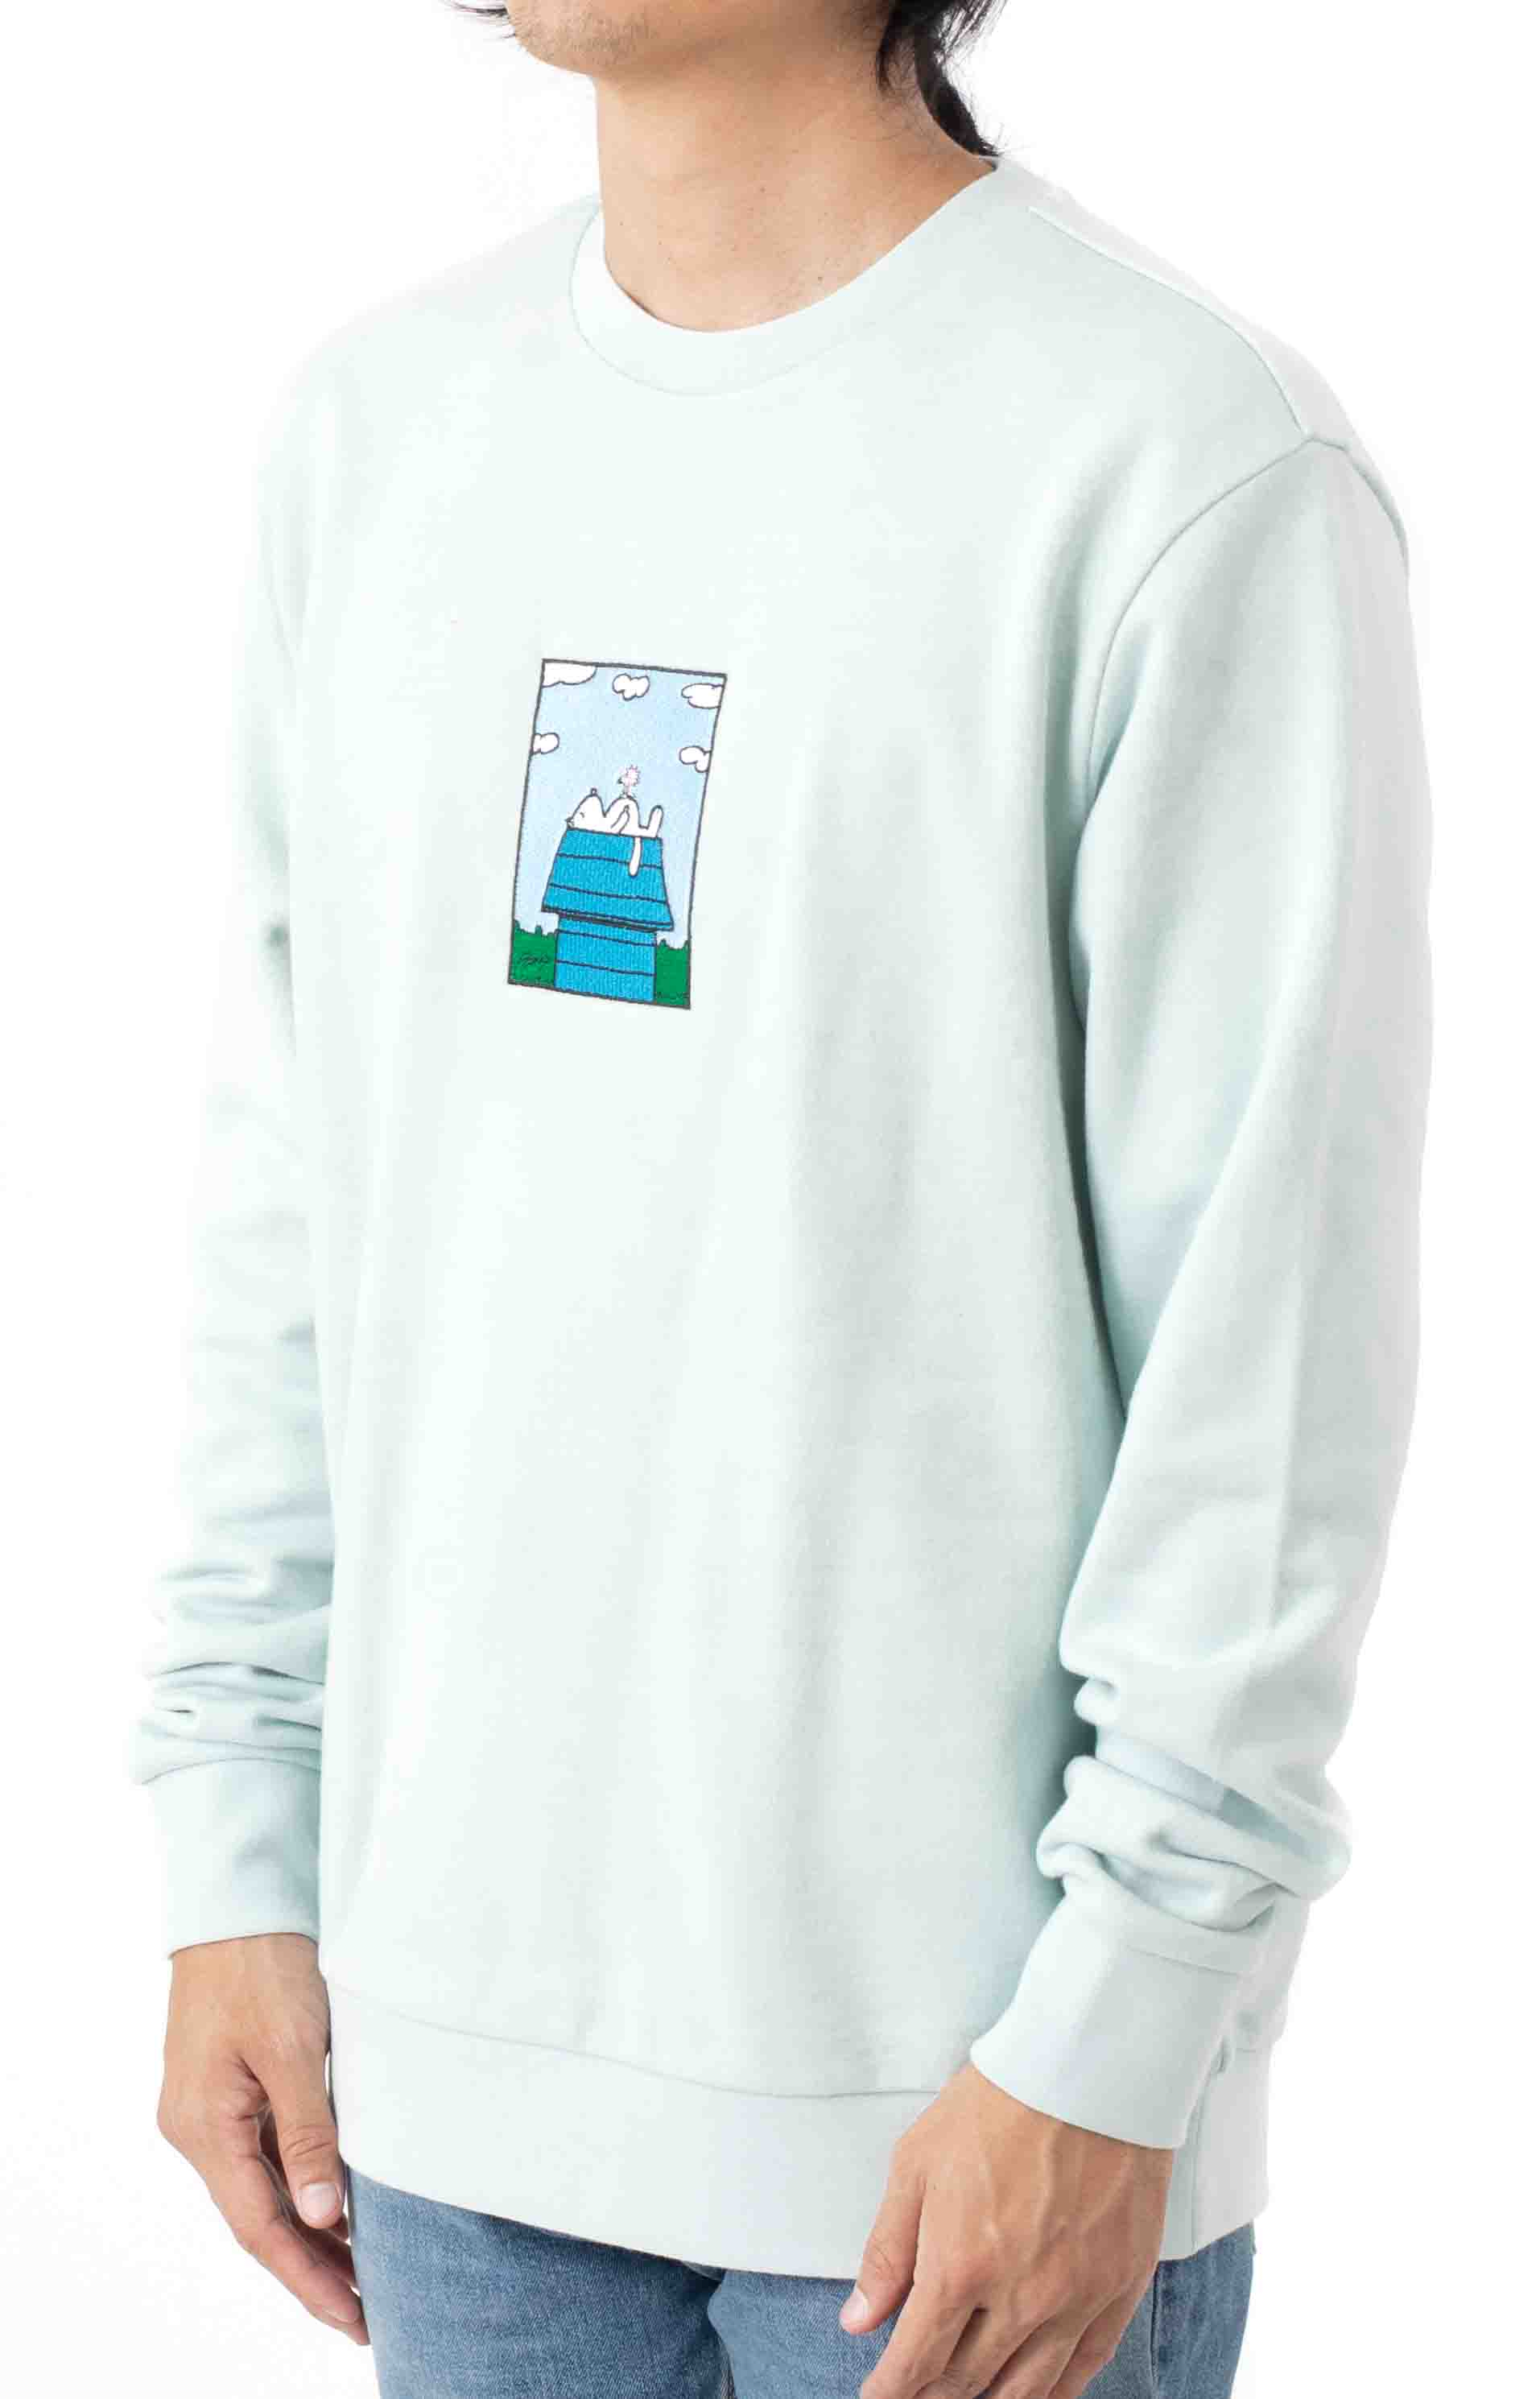 Not Today Embroidered Crewneck - Light Blue  2